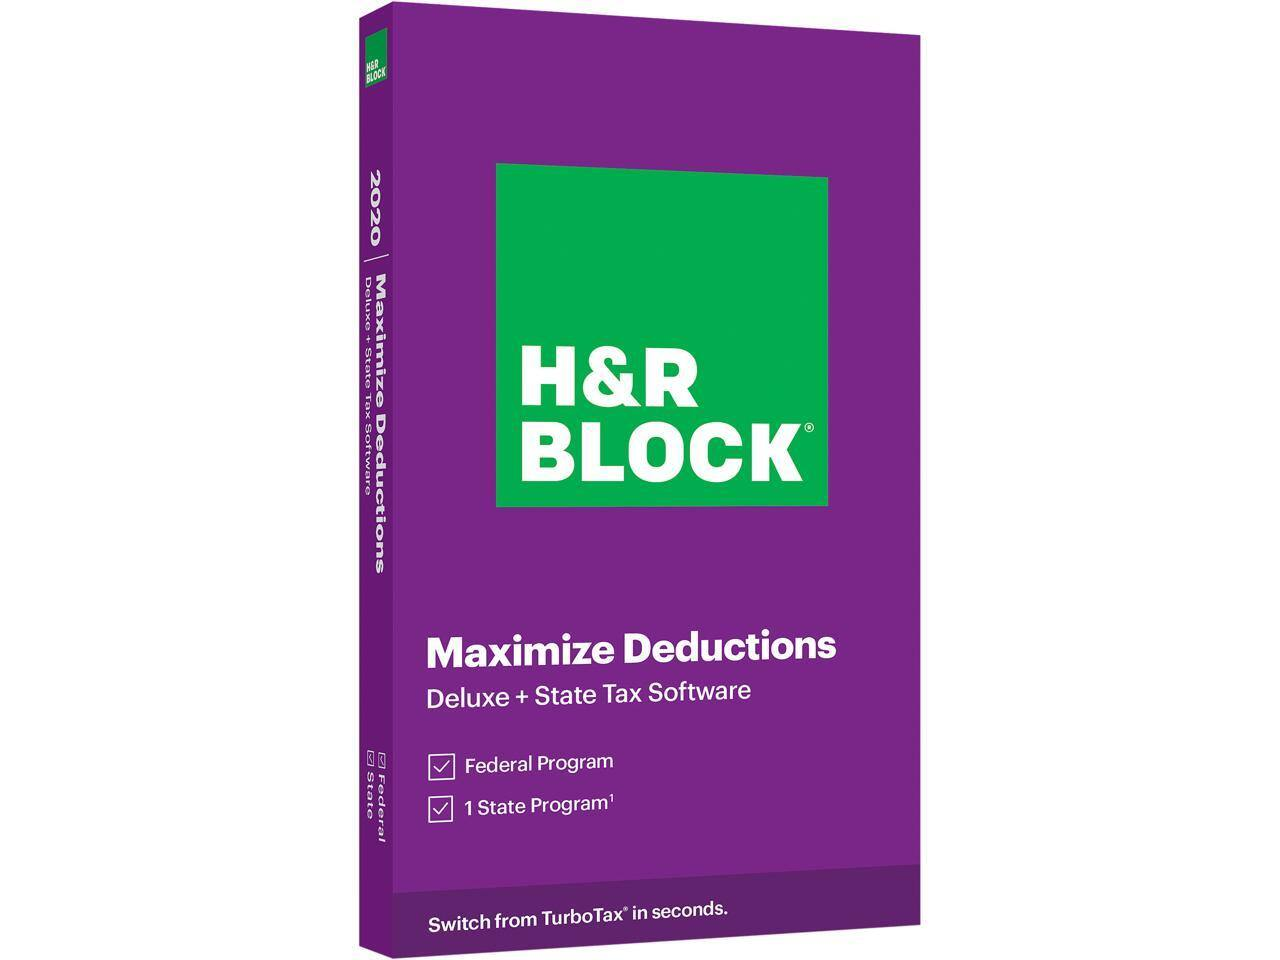 H&R Block 2020 Tax Software: Premium + State $26, Deluxe Federal + State